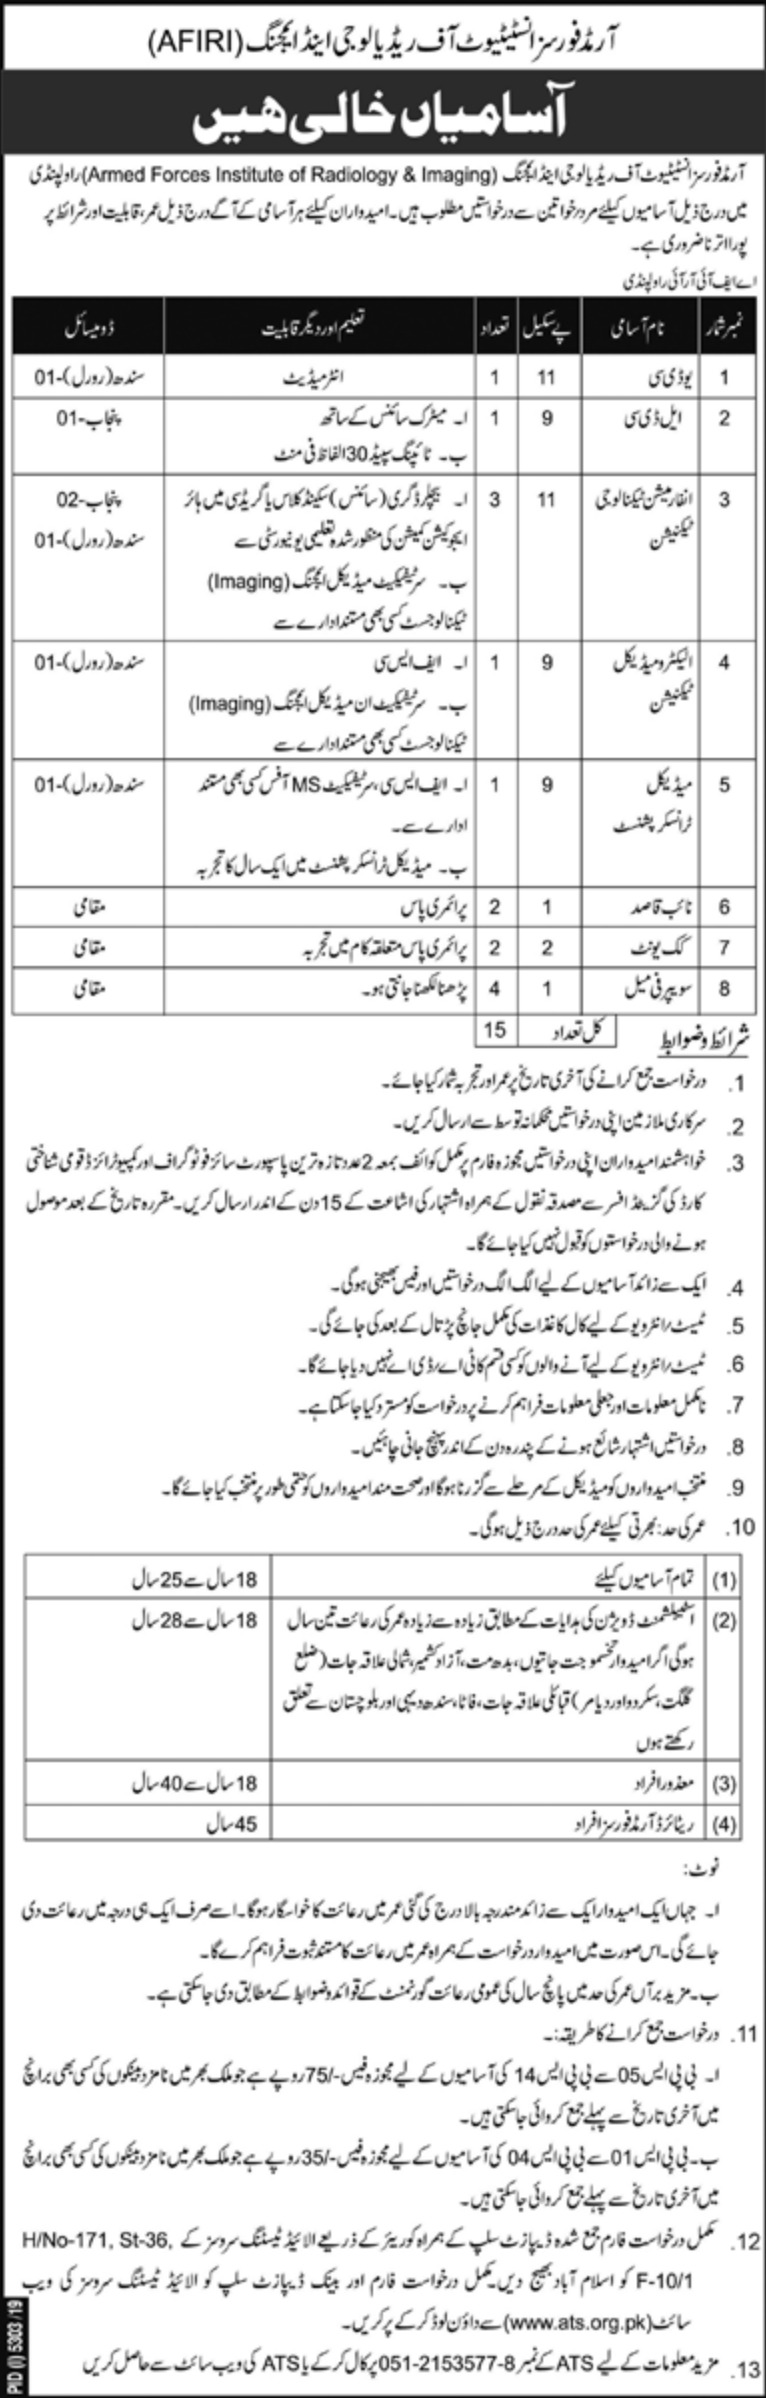 AFIRI Rawalpindi Jobs 2020 Armed Forces Institute of Radiology & Imaging